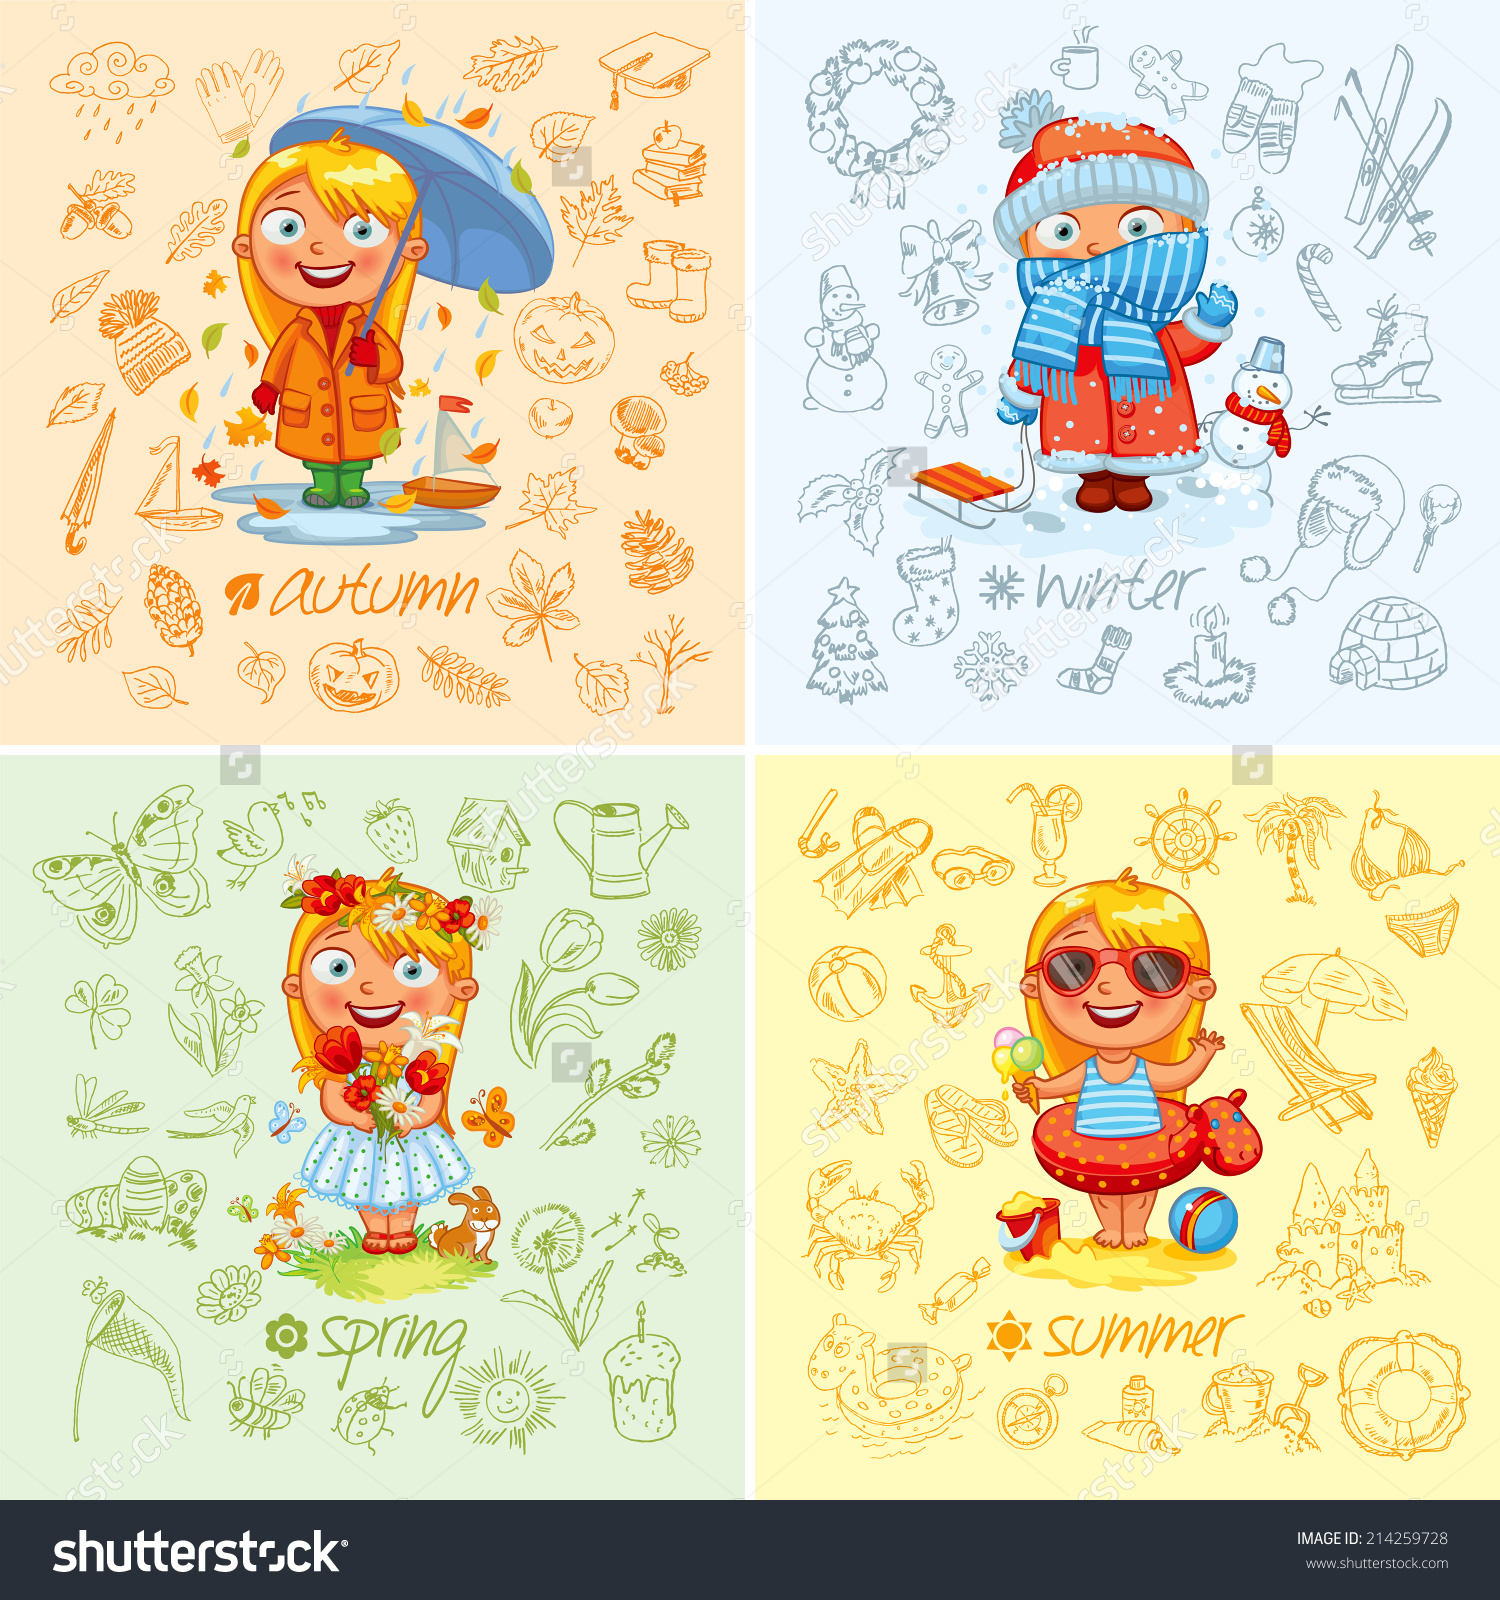 Baby girl autumn clipart banner free stock Baby Girl Four Seasons Freehand Drawing Stock Vector 214259728 ... banner free stock